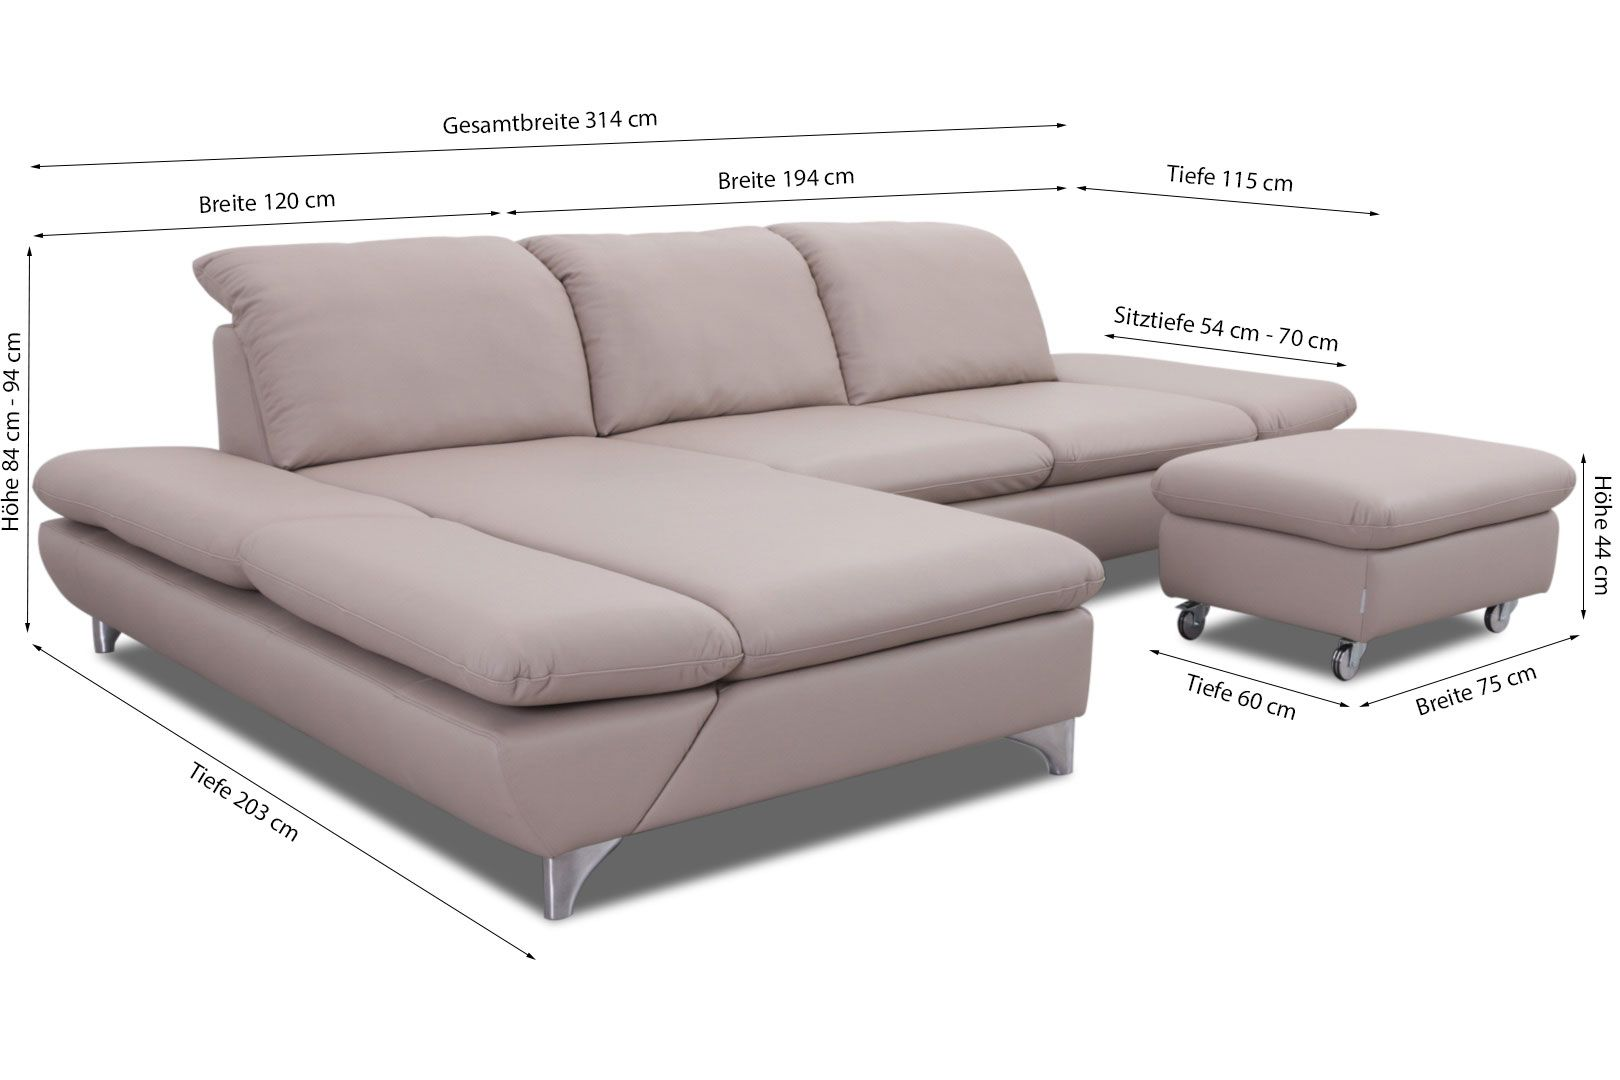 Chilliano Couch Leder Willi Schillig Ecksofa 15278 Taoo In Leder Z71 Stein